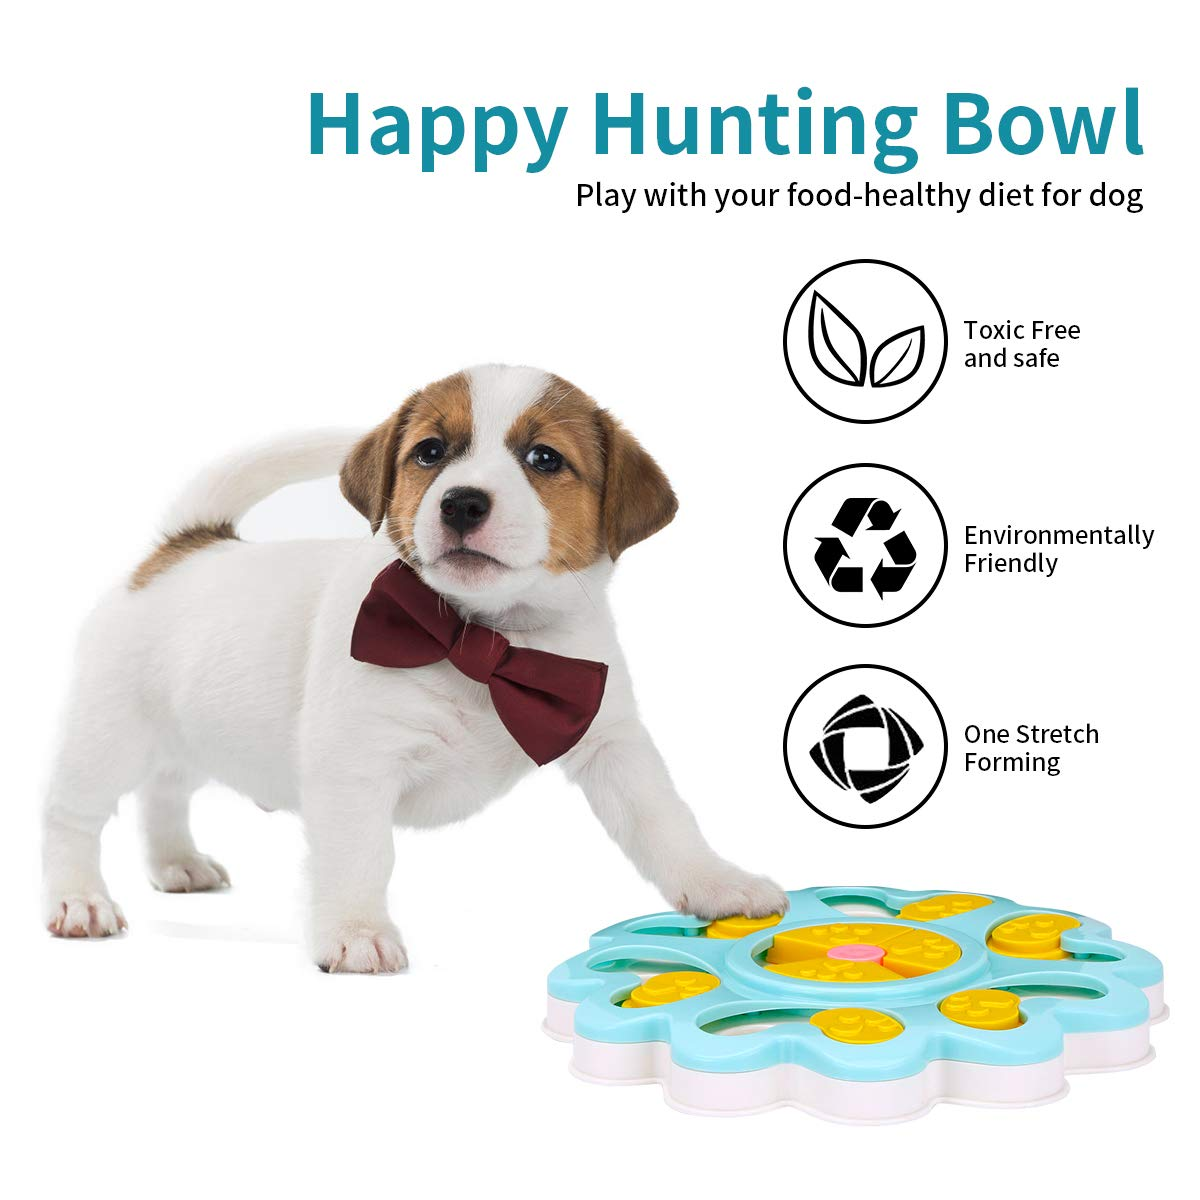 XUANRUS Puppy Treat Dispenser Dog Toys-Plastic Dog Food Puzzle Toys Bowl with Non-Slip/Increase IQ/Interactive Slow Dispensing Feeding Pet Dog Training Games Feeder for Mini Dog Puppies